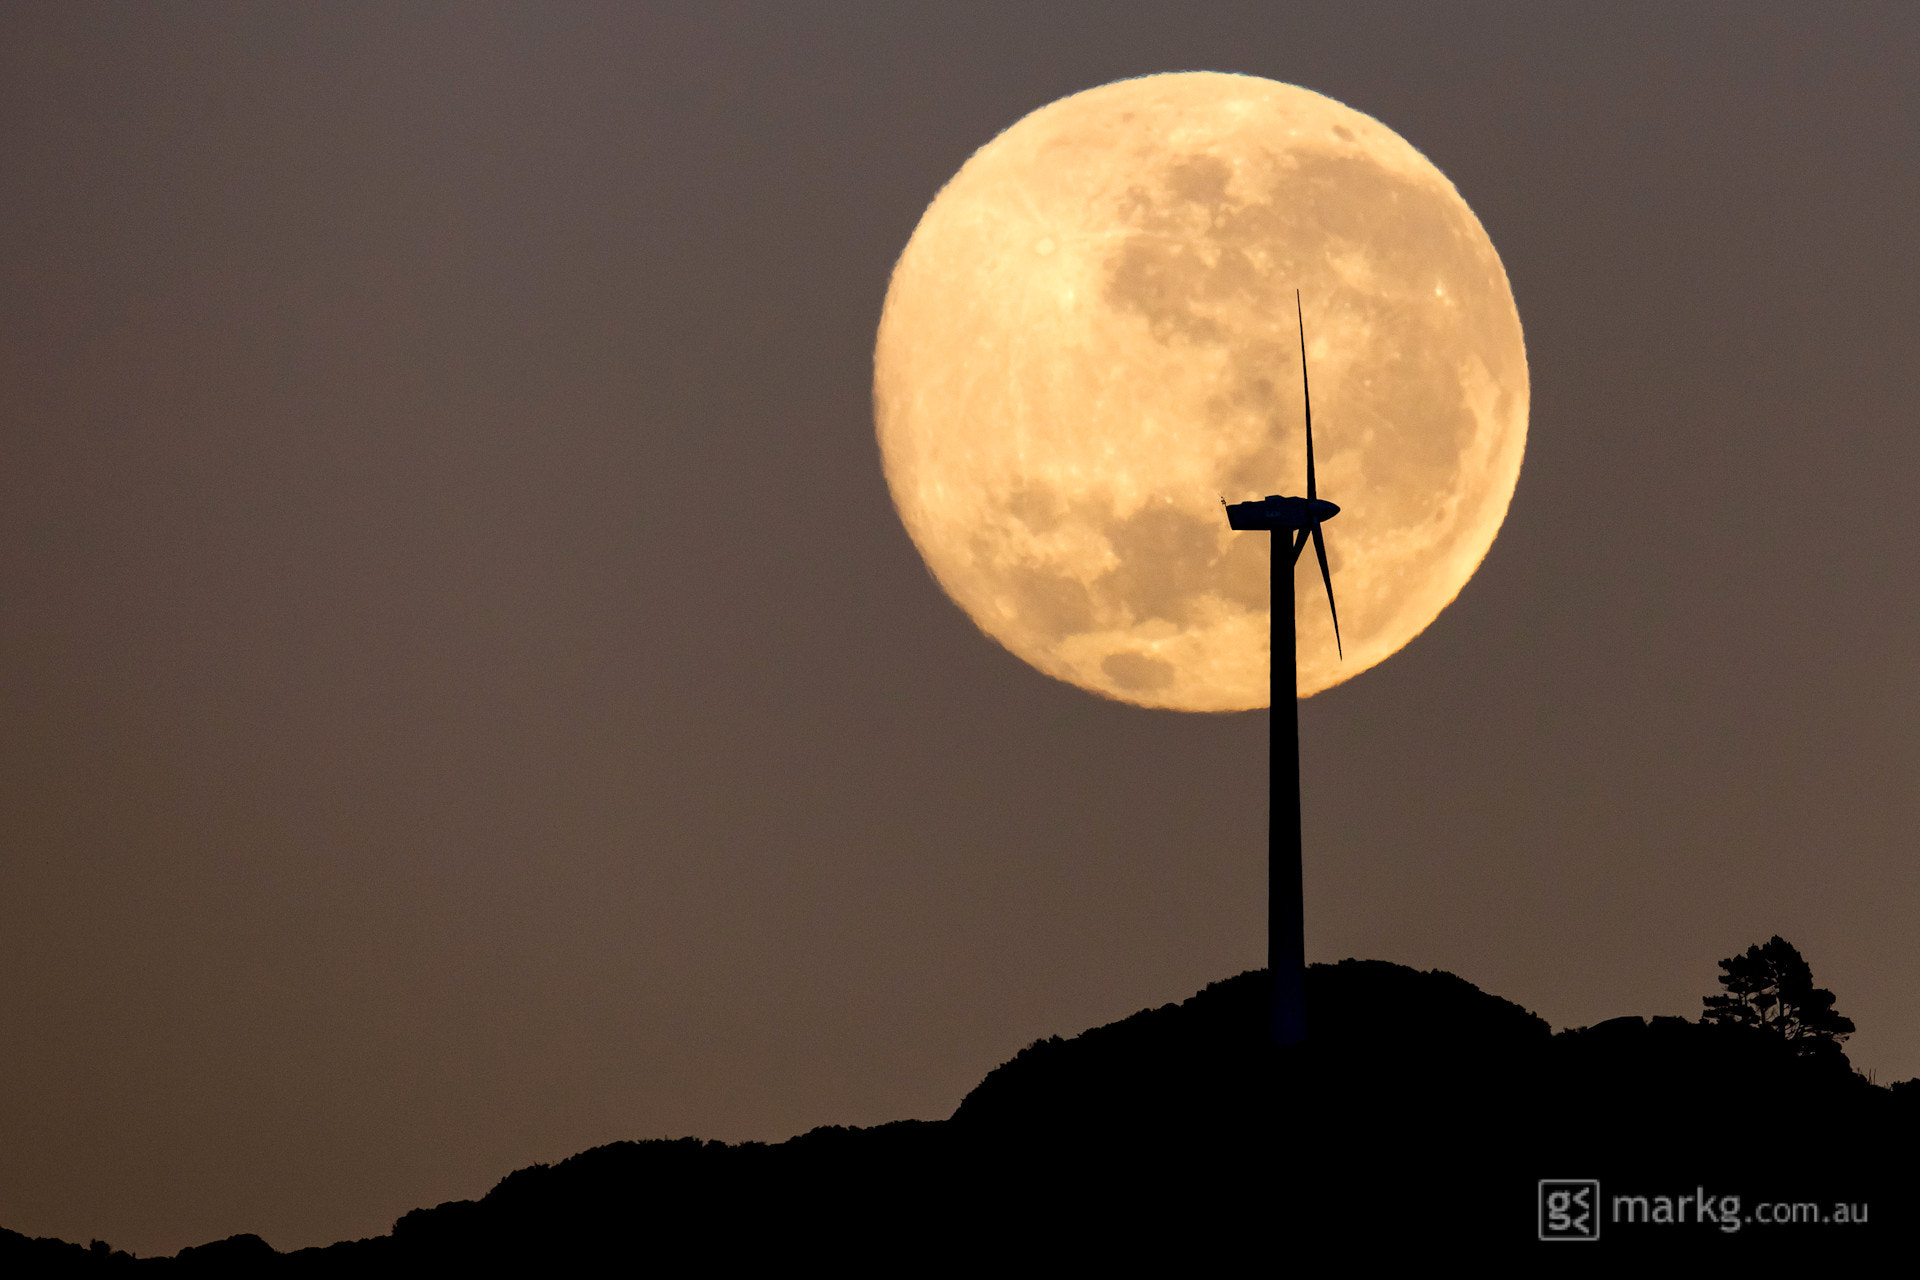 Photograph Moonset Over Brooklyn Wind Turbine by Mark Gee on 500px